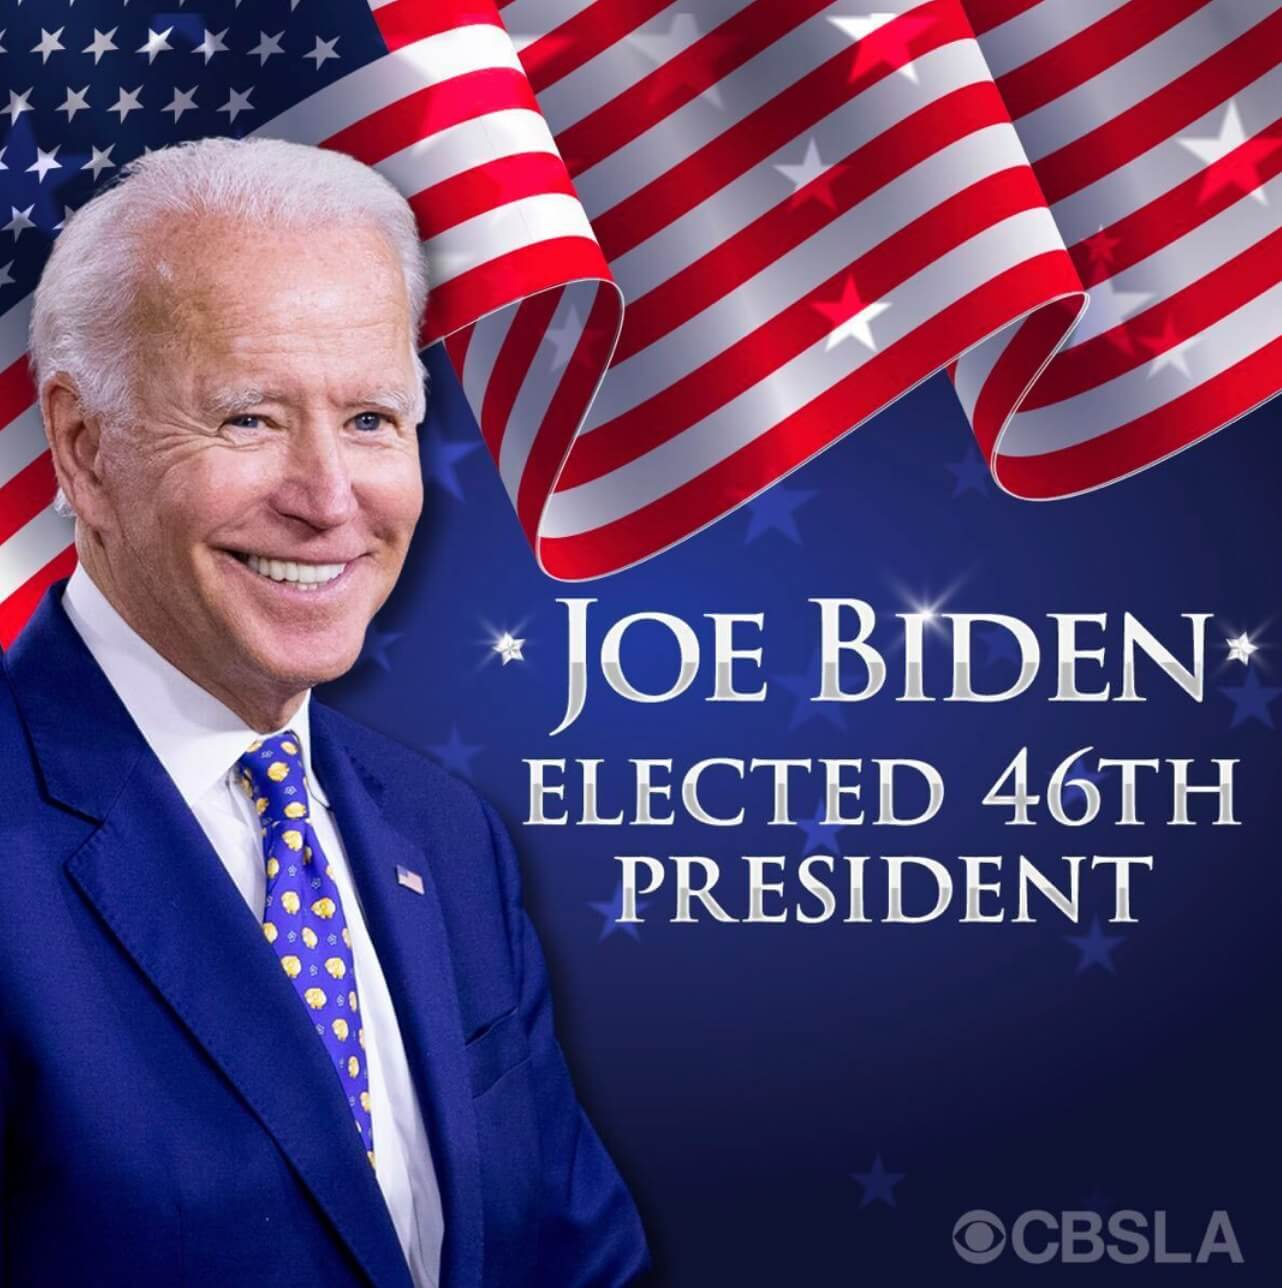 Biden in White House – Implications for India